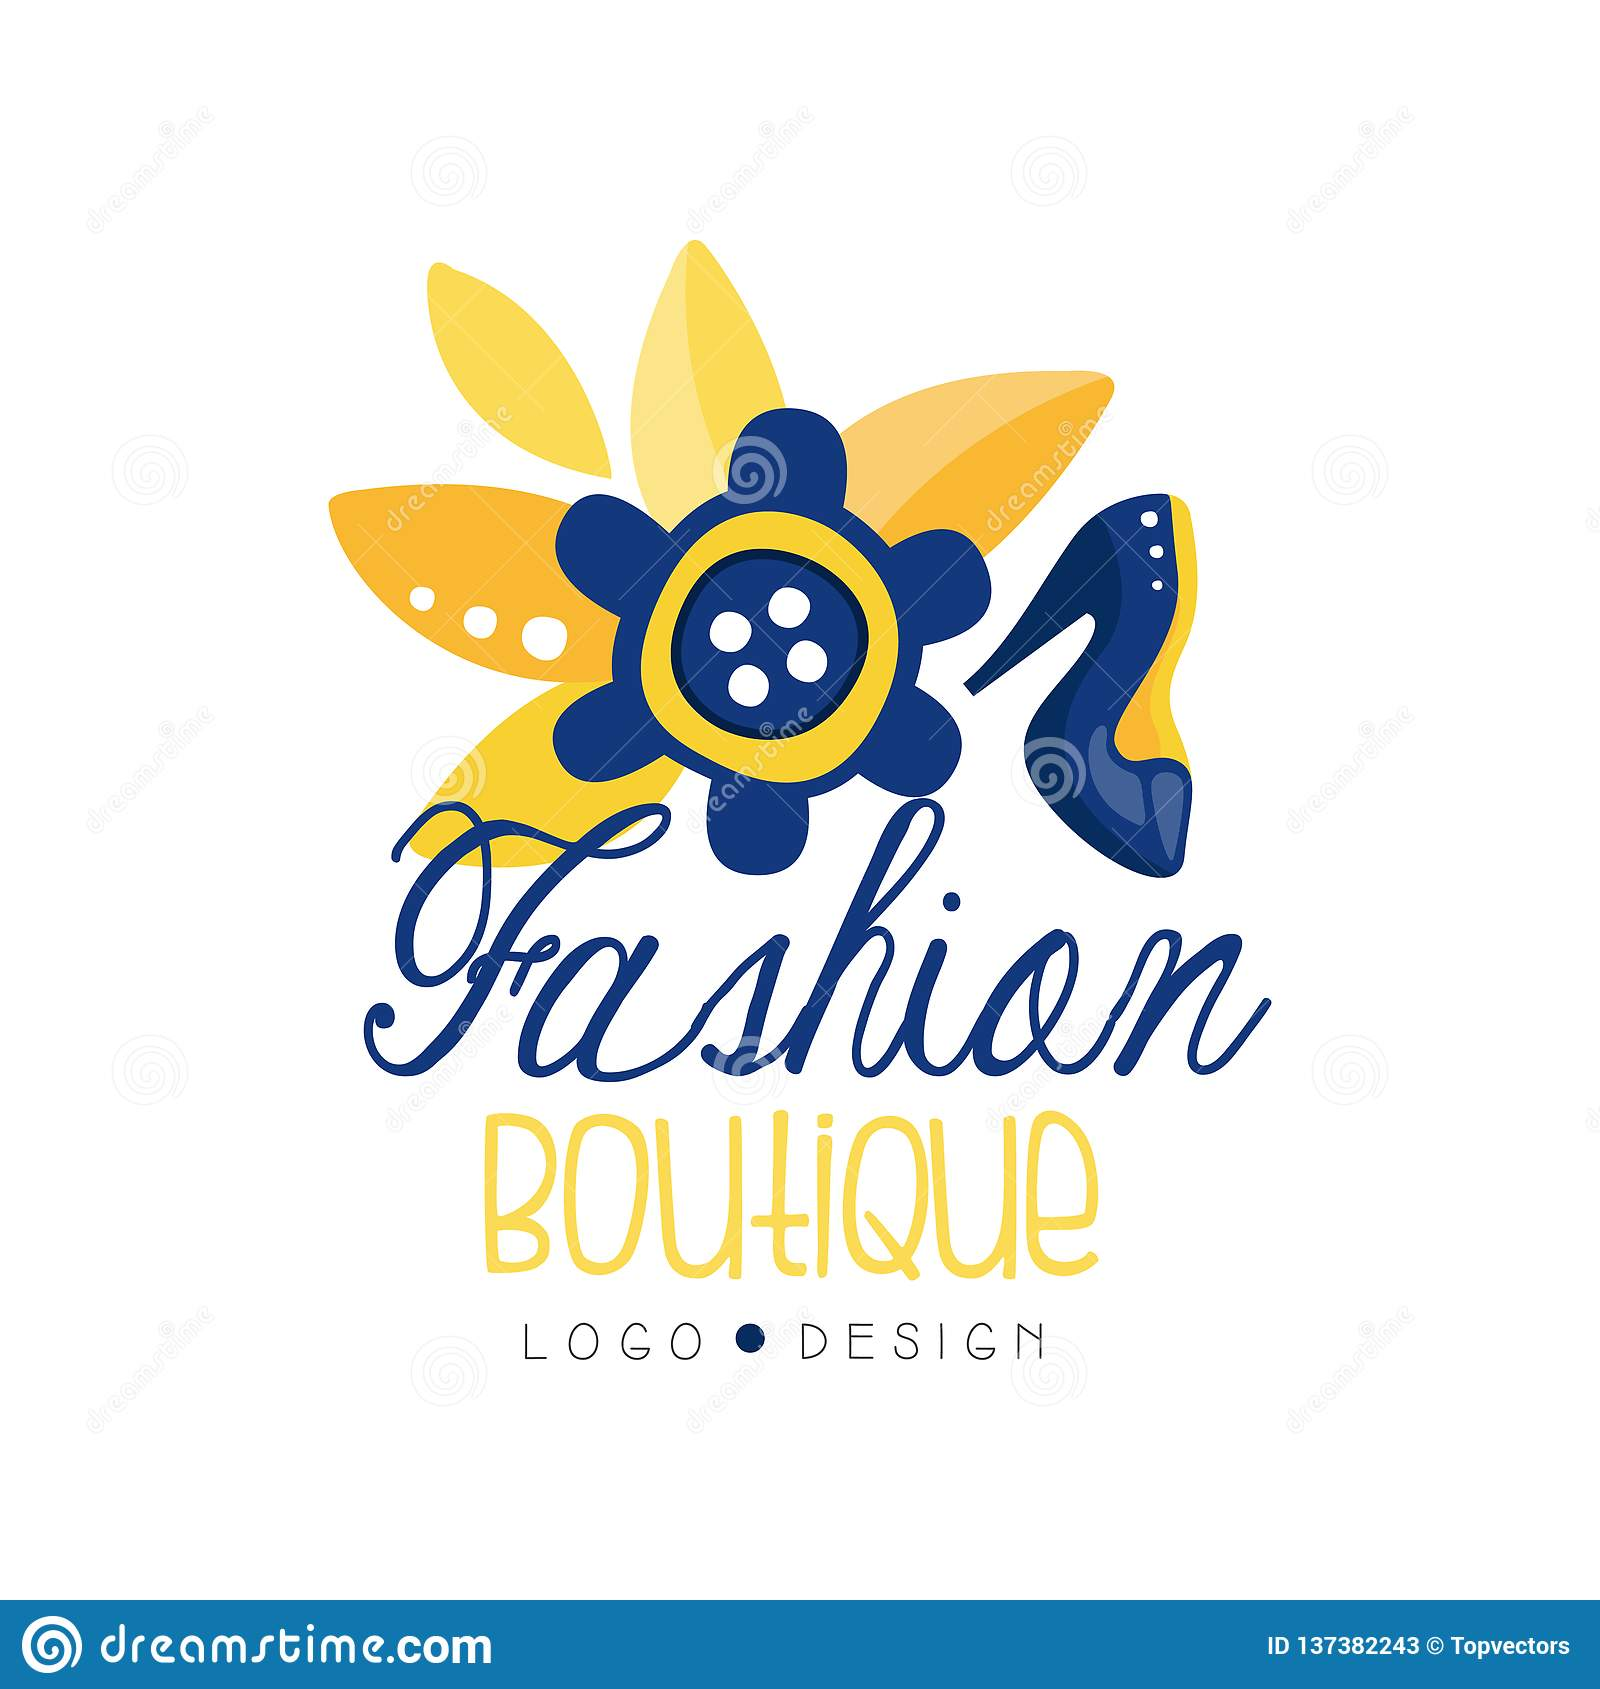 Fashion Boutique Logo Design Clothes Shop Dress Store Label Vector Illustration Stock Vector Illustration Of Design Label 137382243